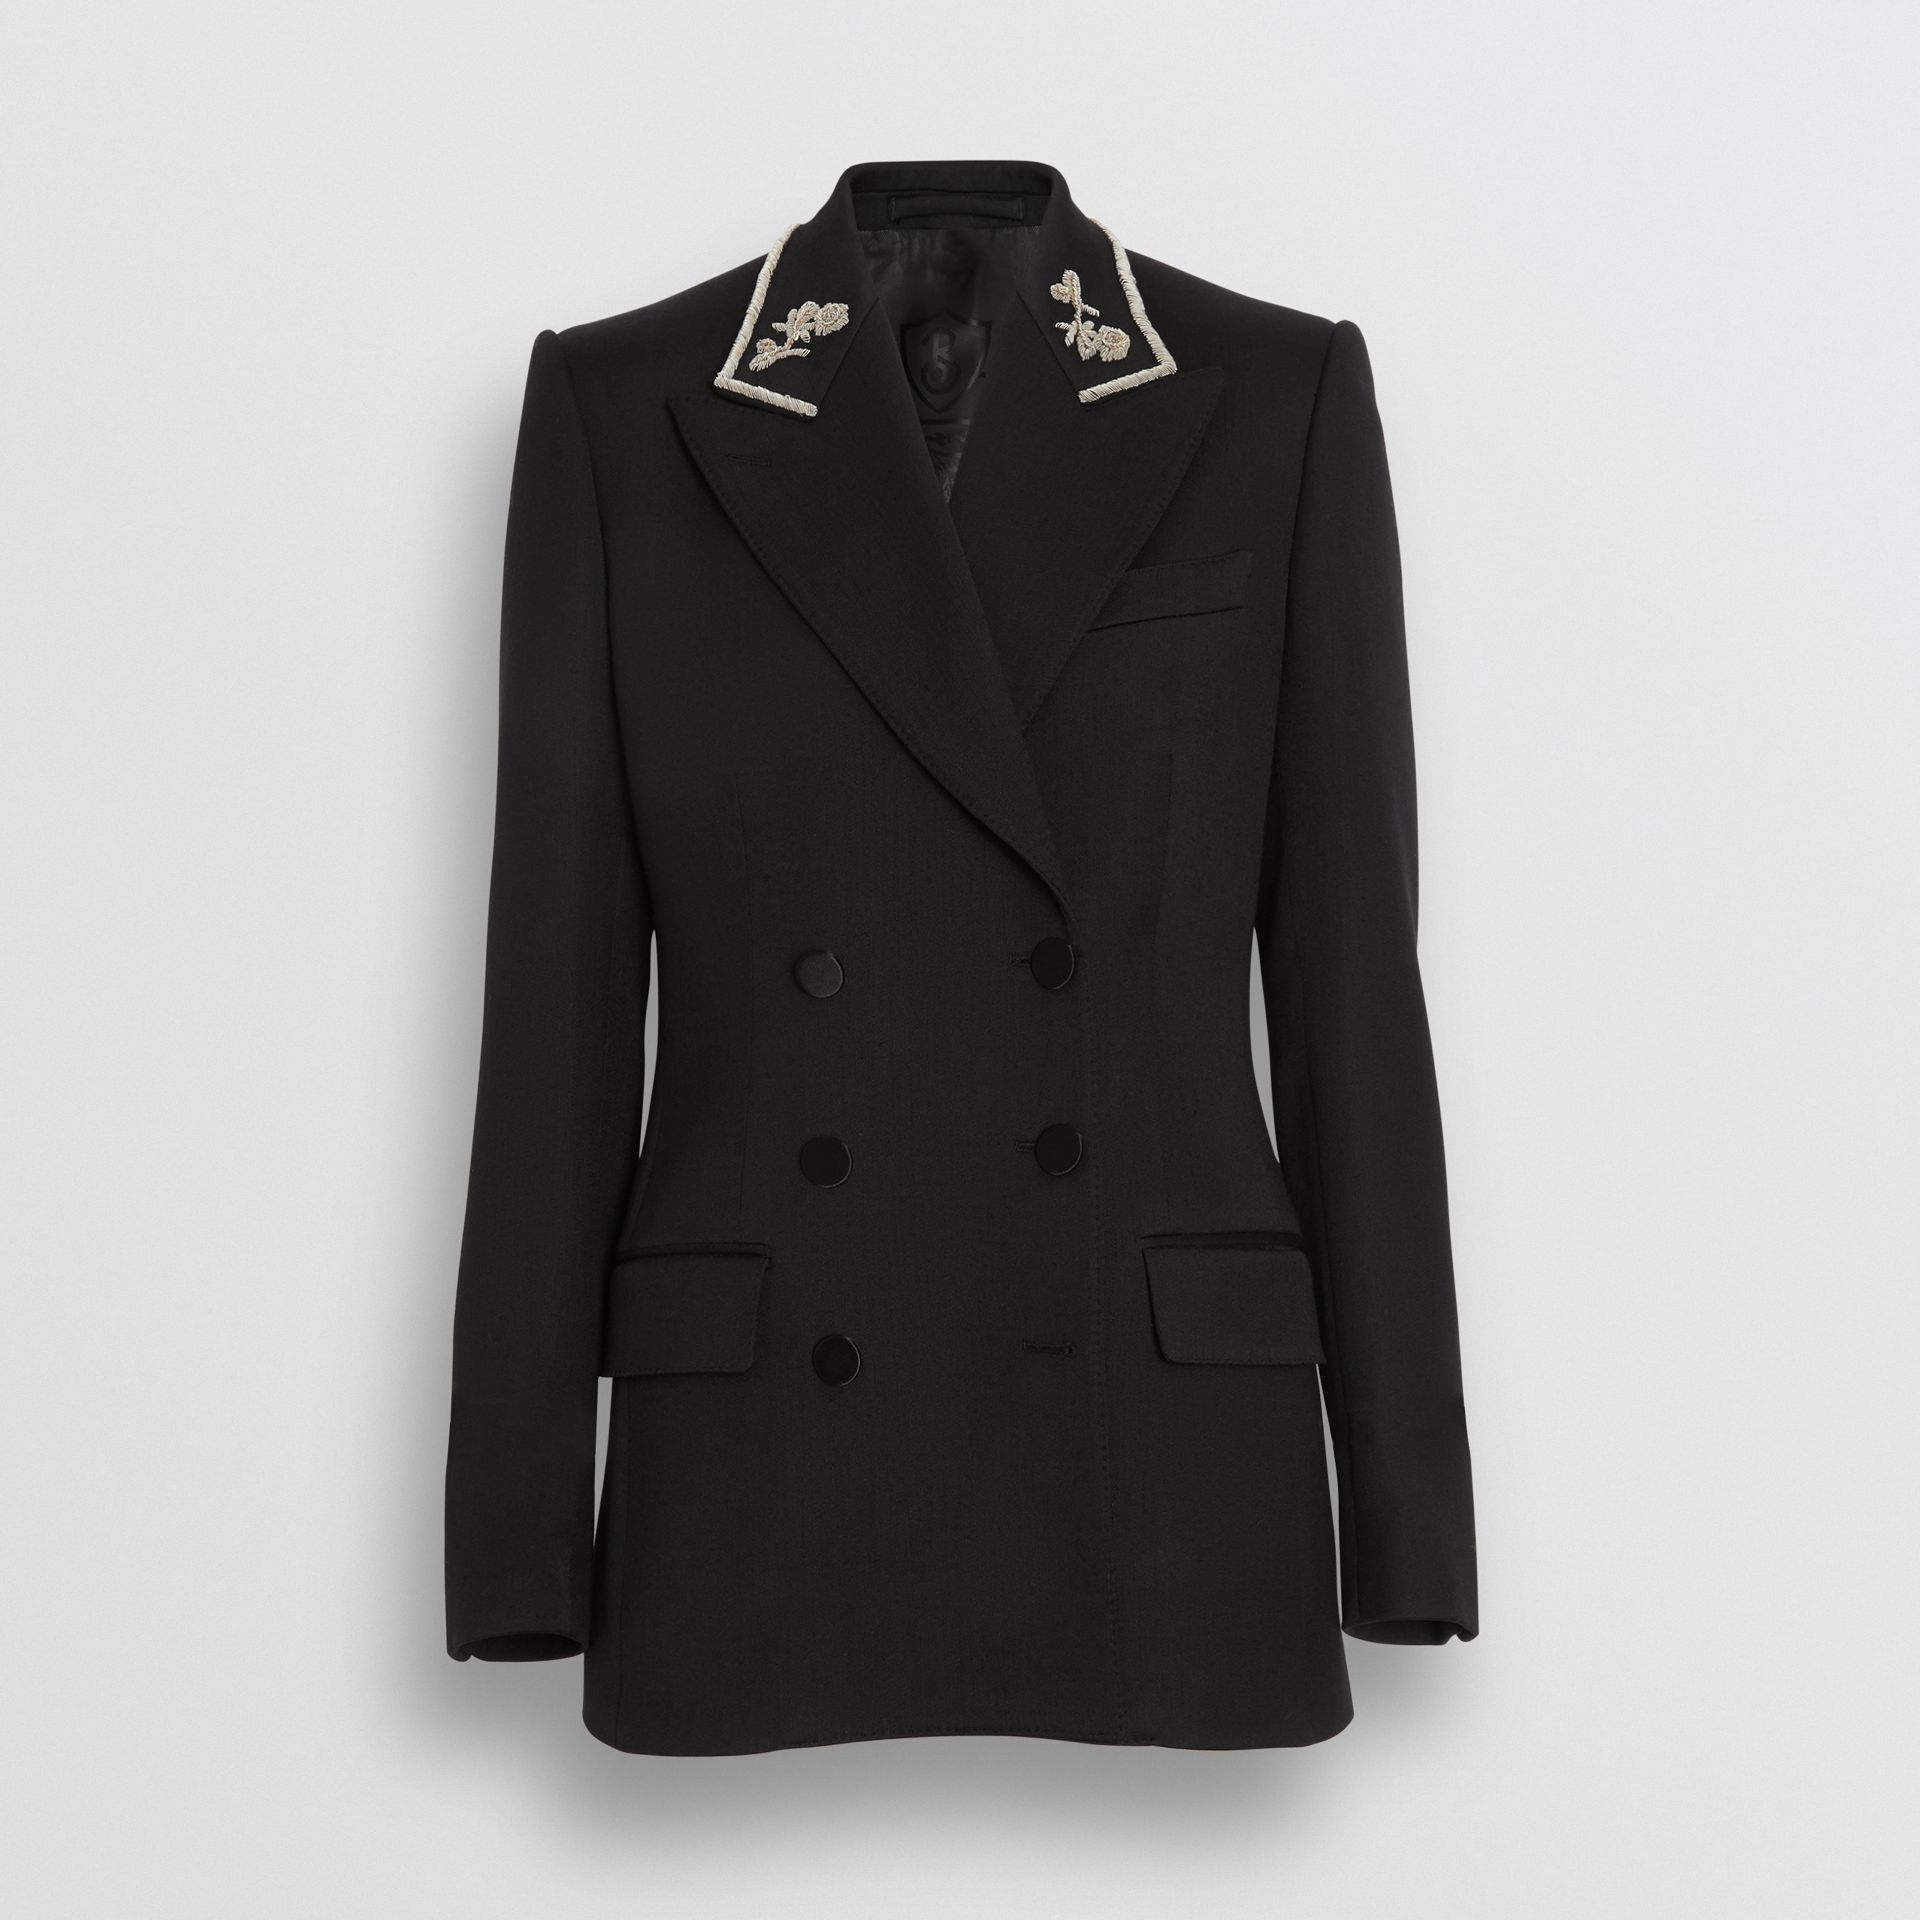 Bullion Stretch Wool Double-breasted Jacket in Black - Women | Burberry Hong Kong - gallery image 3